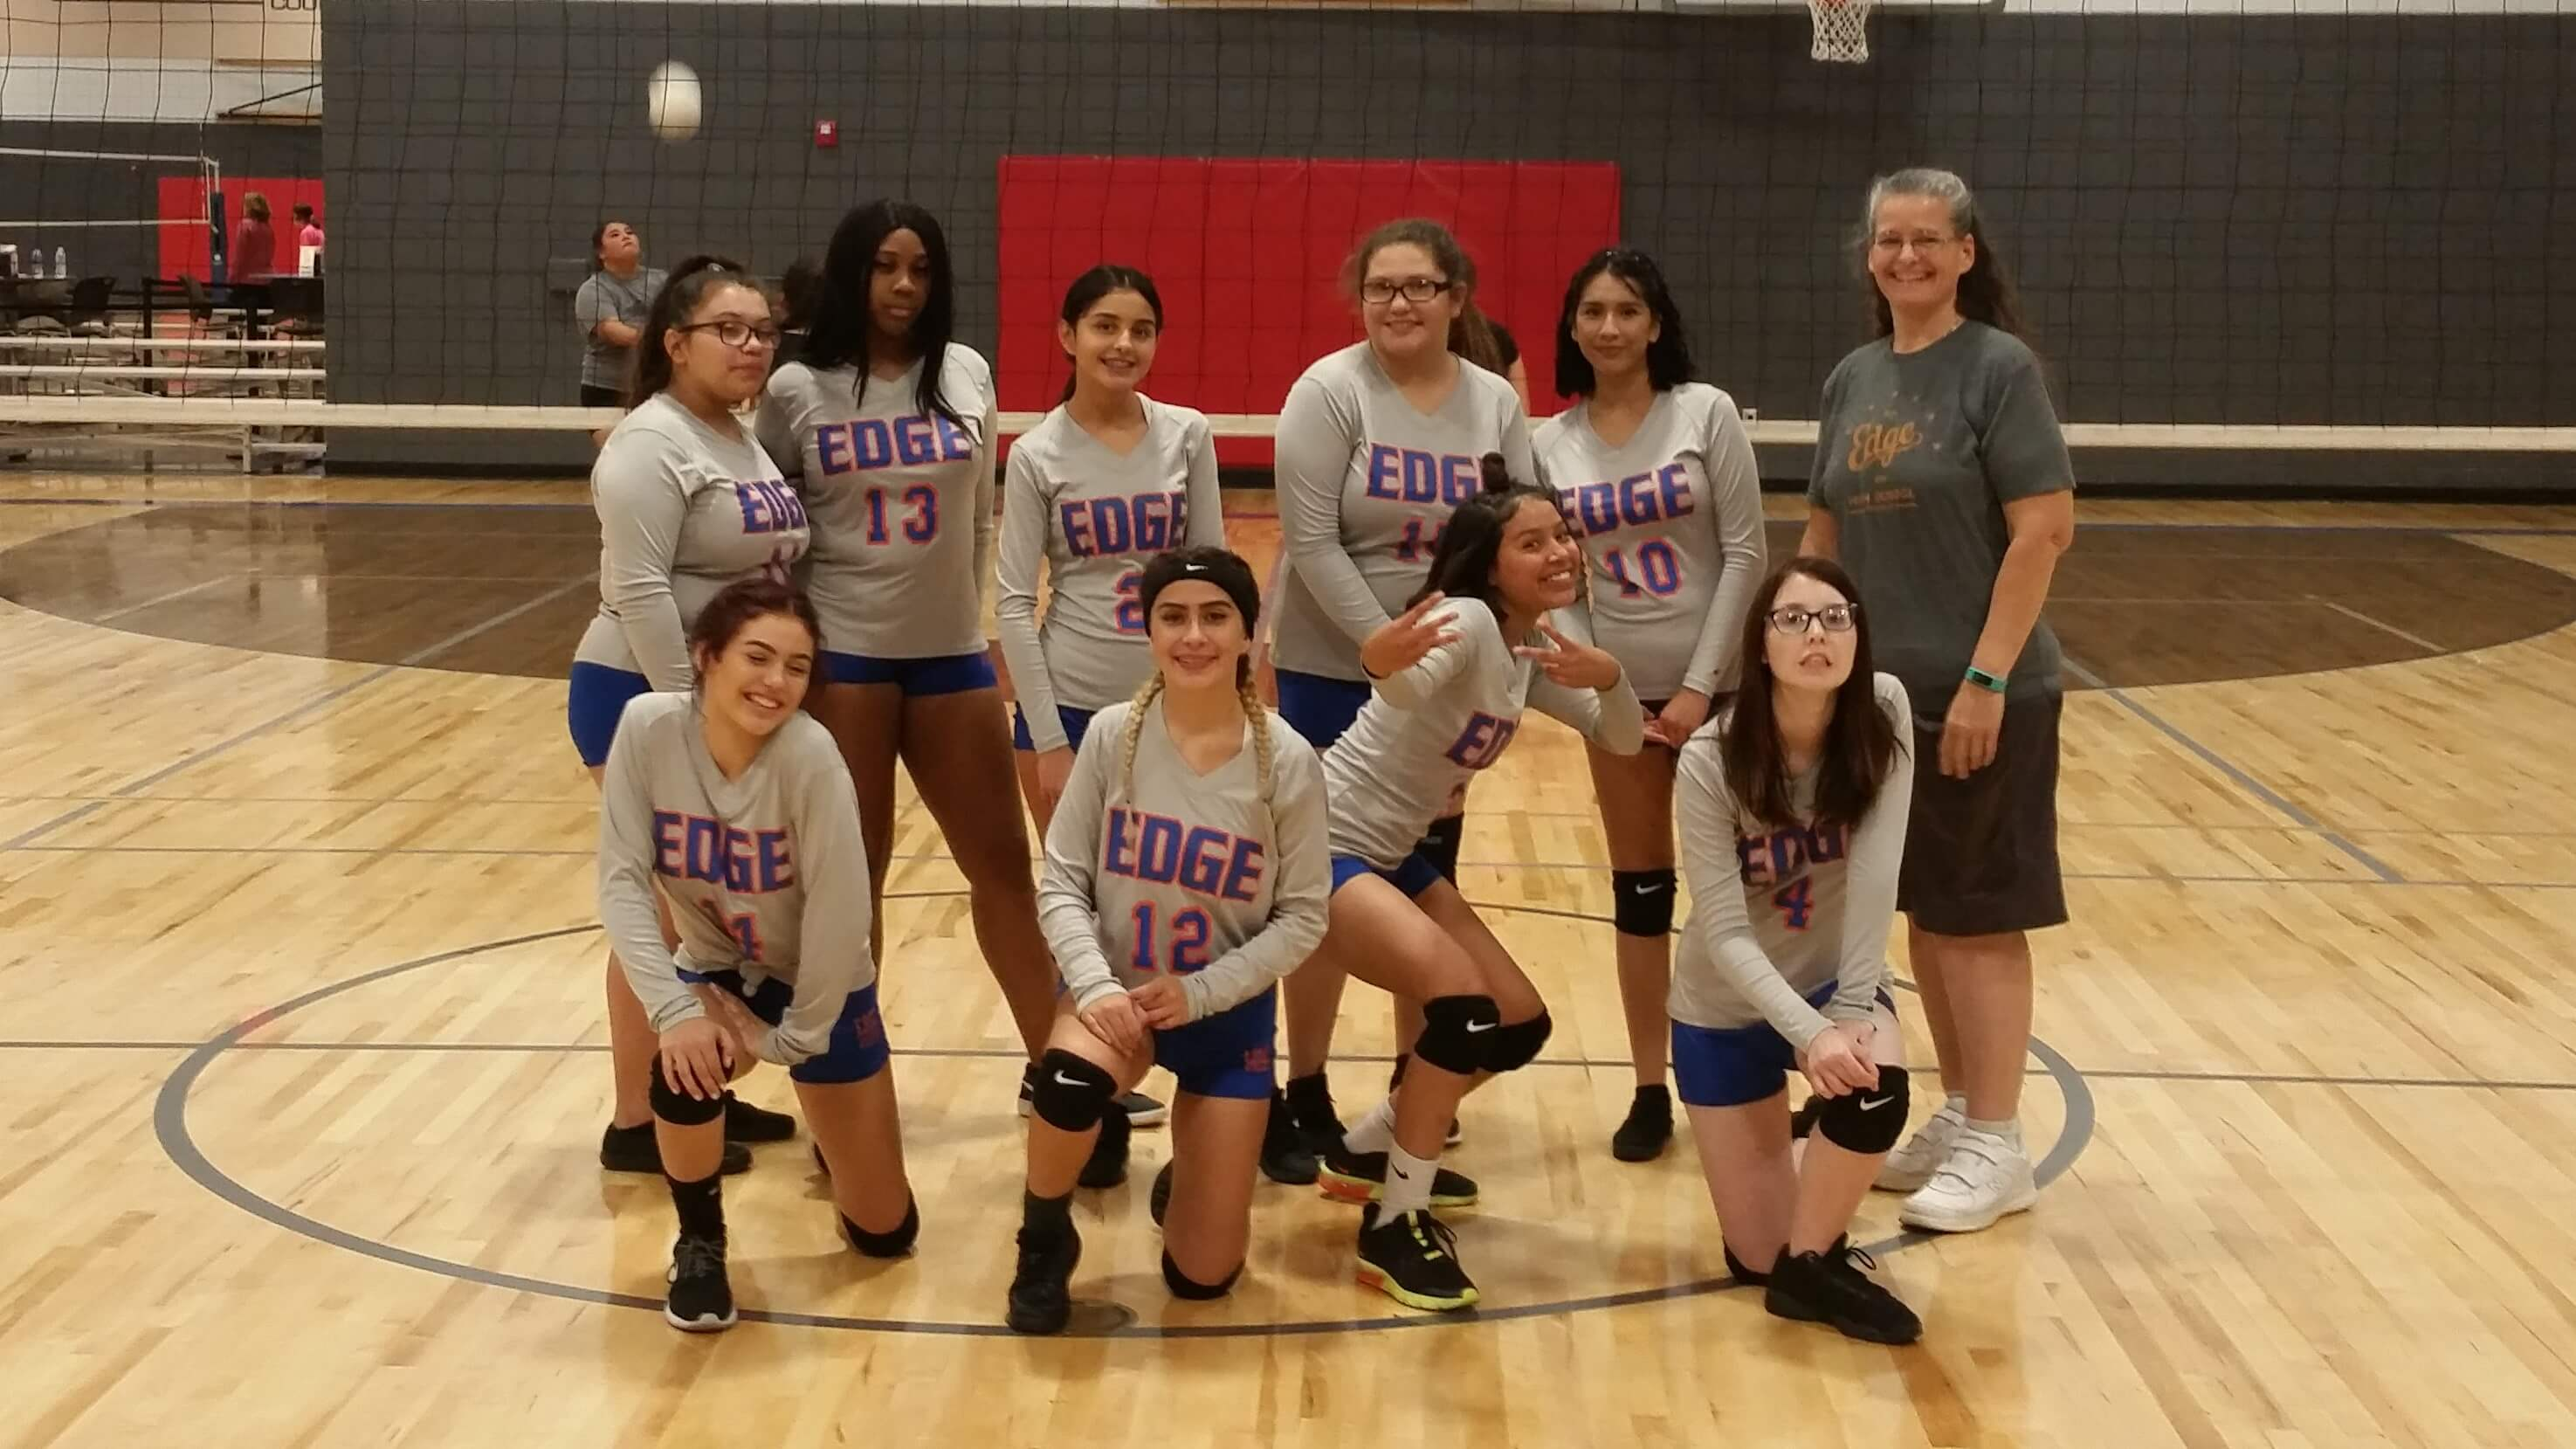 Edge High School Sports – Volleyball Team